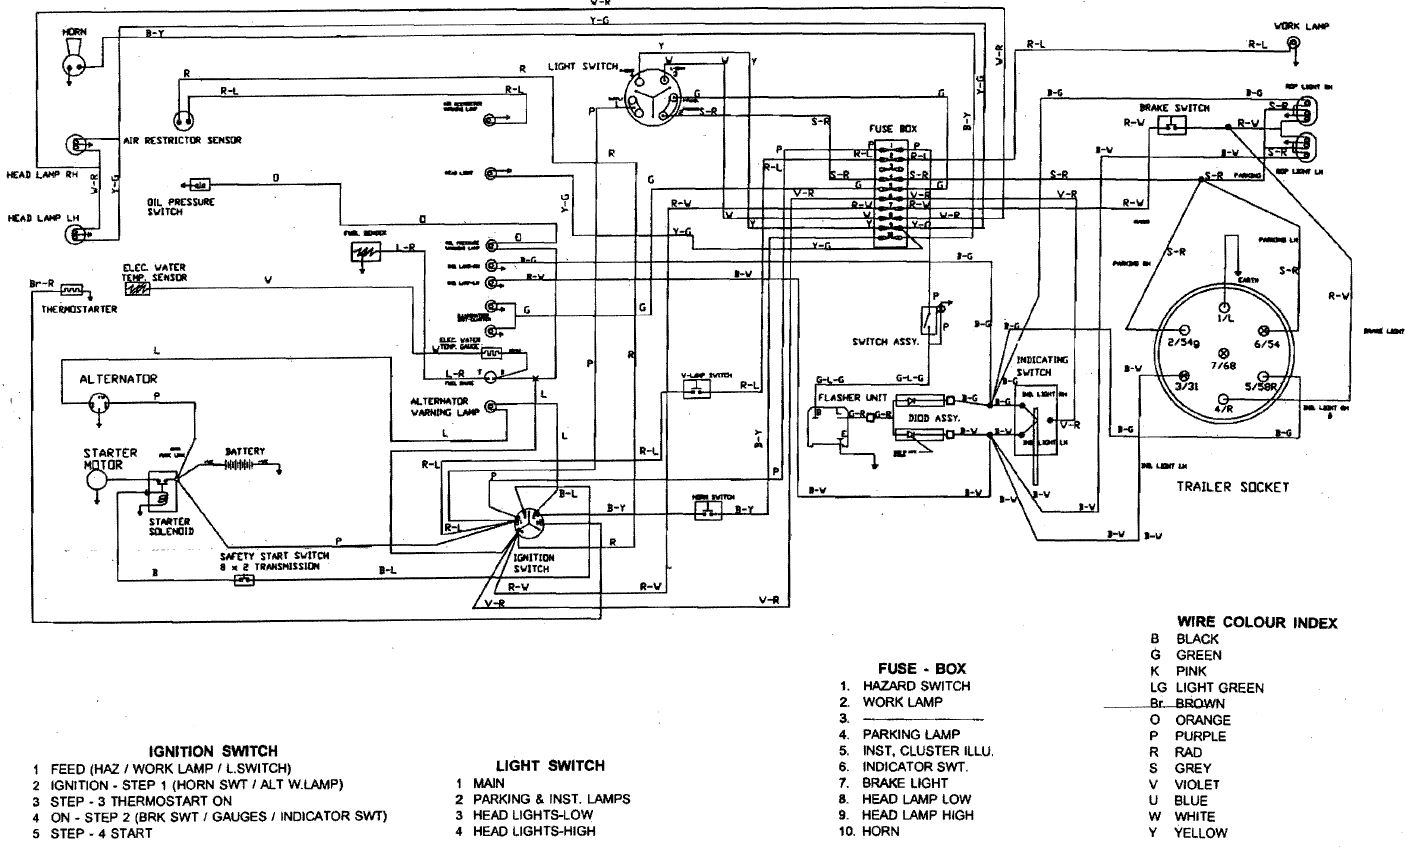 john deere gator alternator wiring diagram 2001 pontiac aztek jd best library 120 excuators wireing simple diagrams lx176 as well